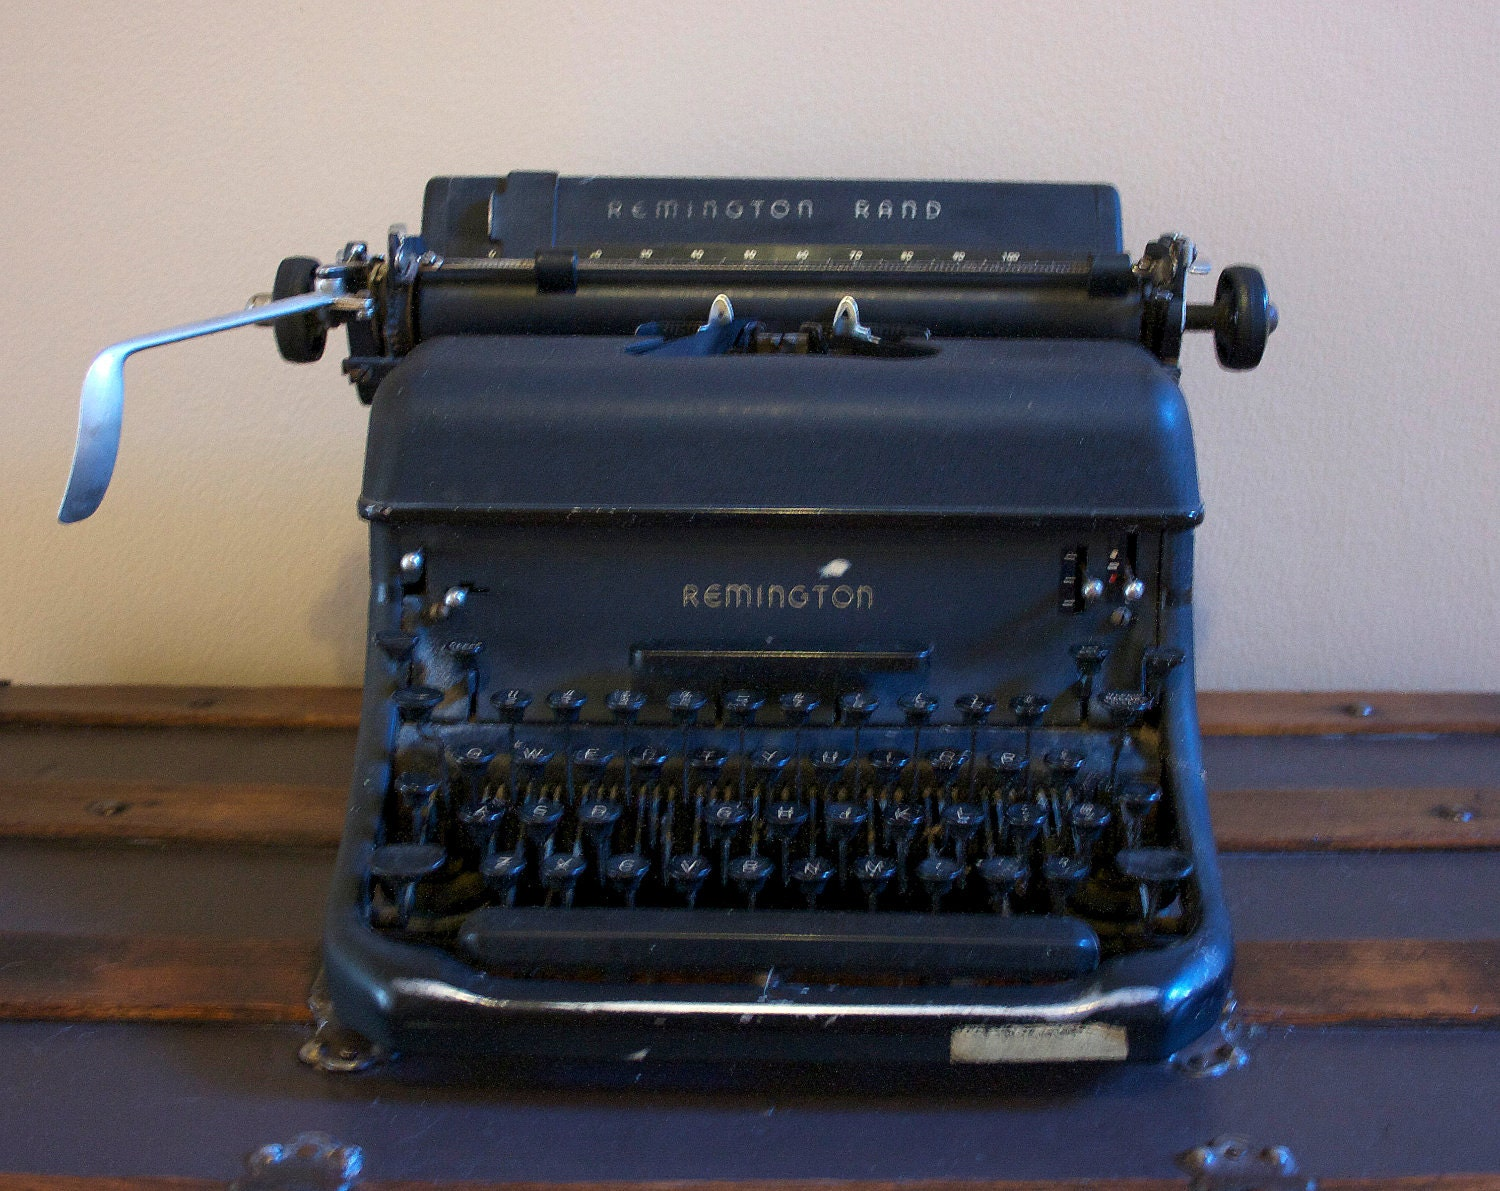 Antique remington rand typewriter for What can you do with old keys